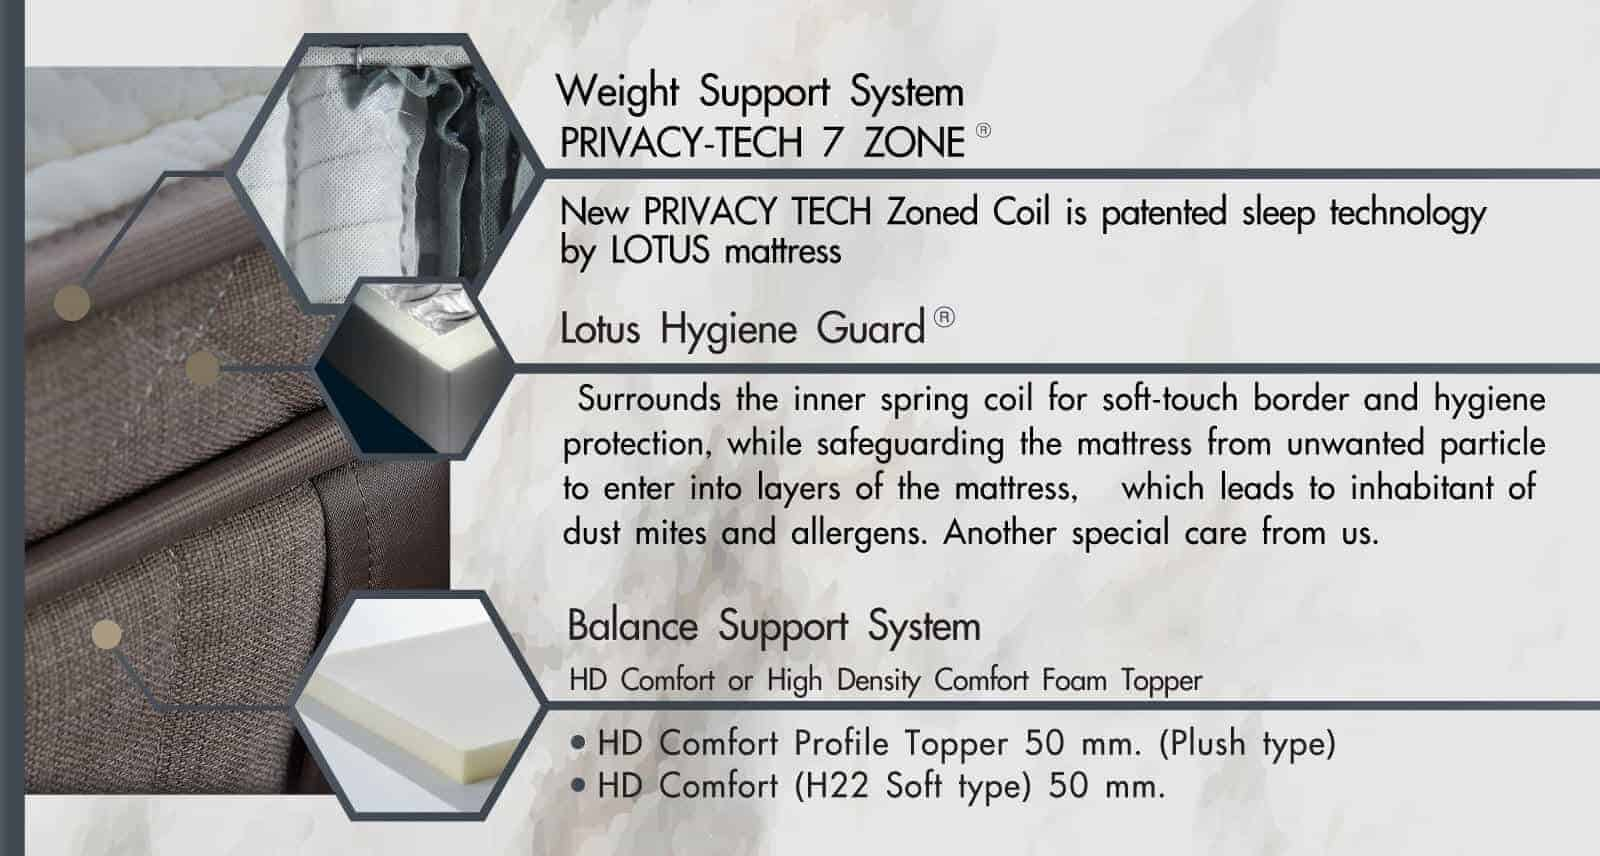 Lotus Mattress | Privacy Tech - SORENTO 9